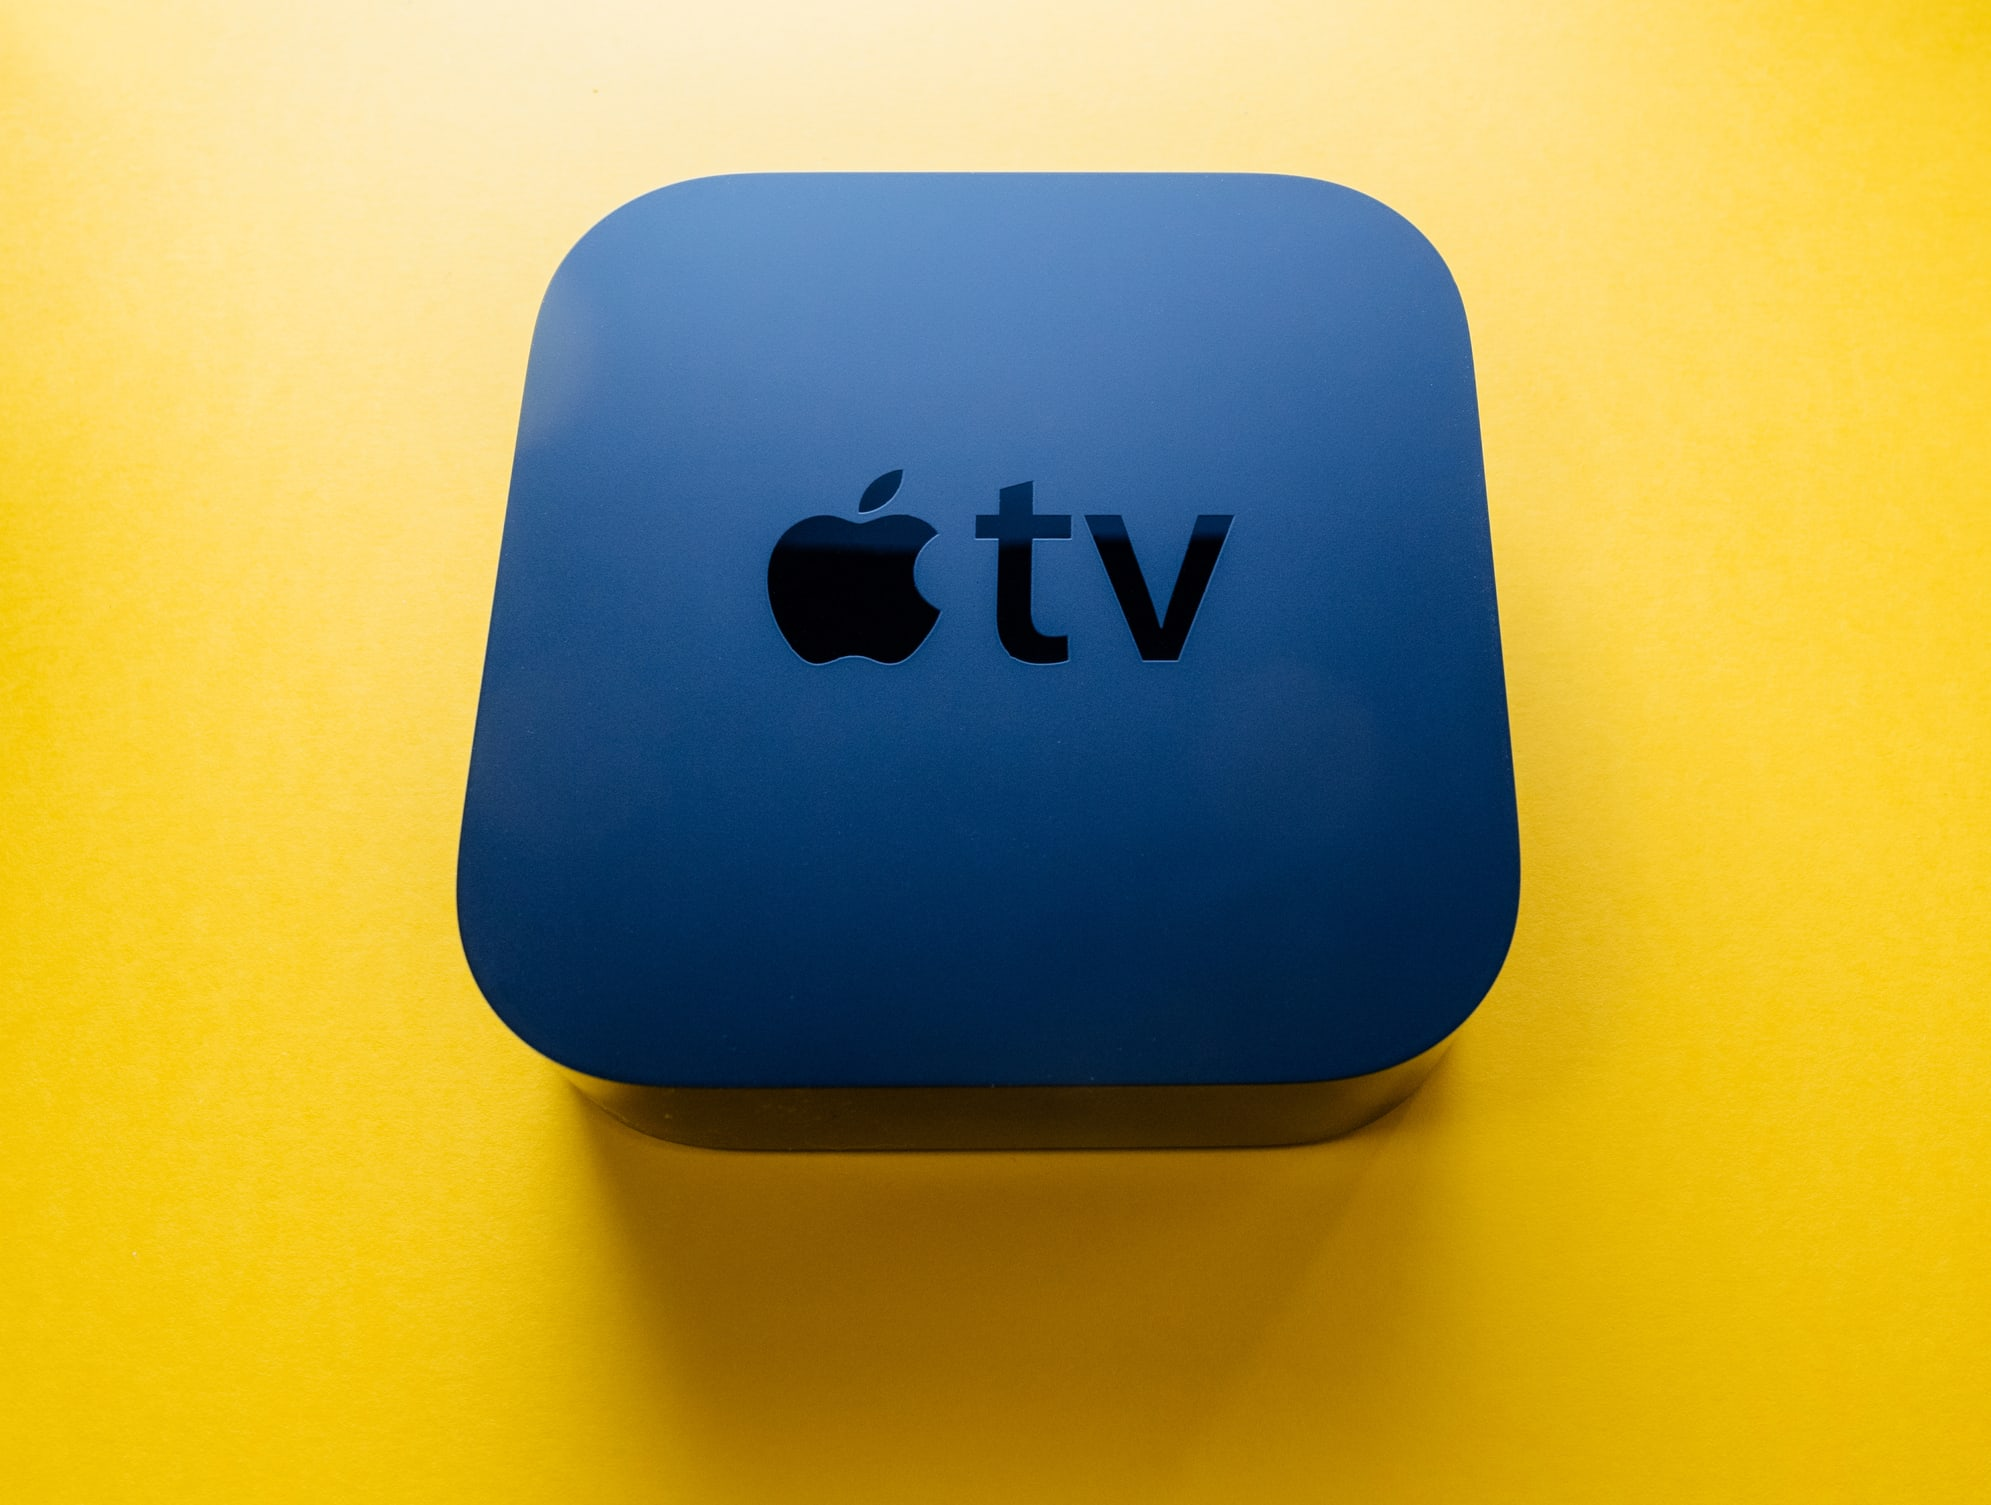 New Apple TV 4k Device Against Yellow Background